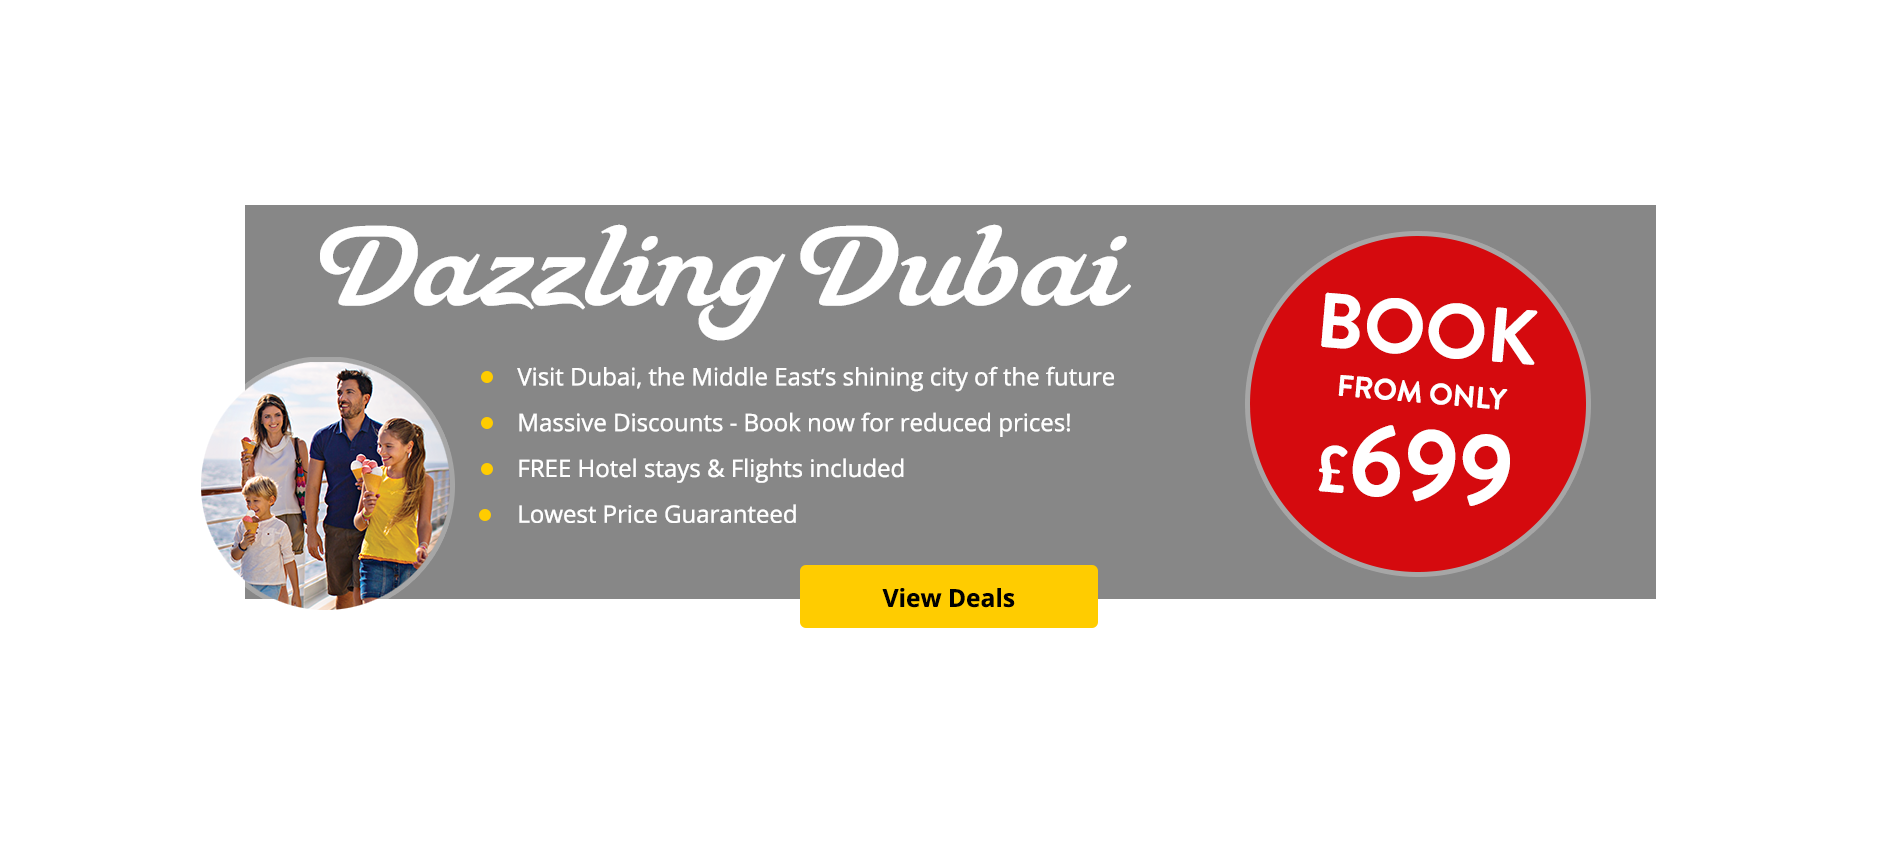 Visit Dubai, the Middle East's shining city of the future from only £699.